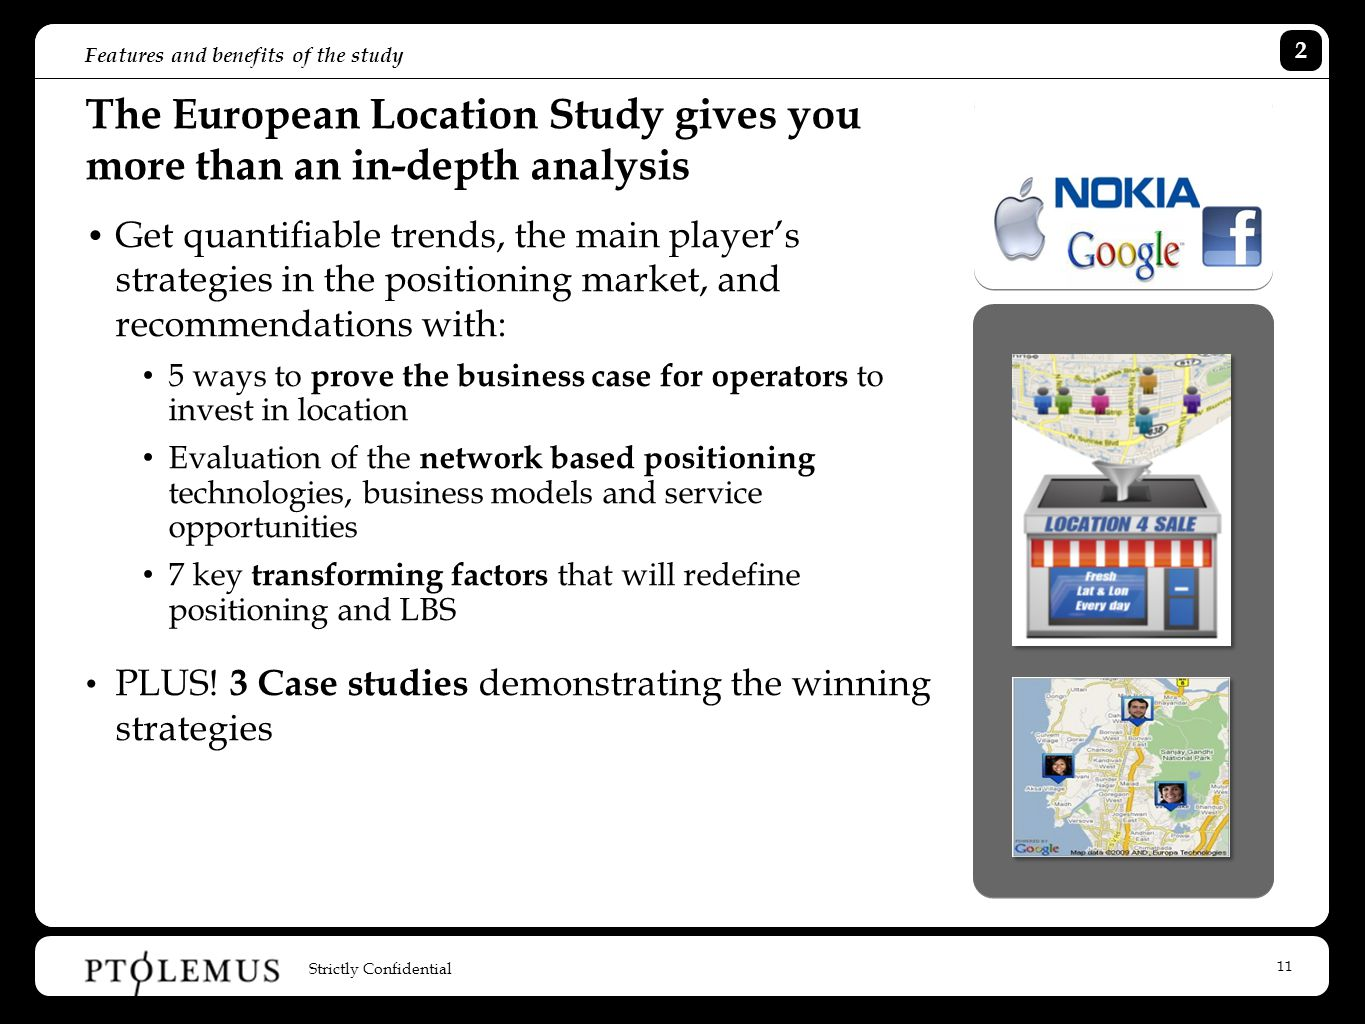 11 Features and benefits of the study The European Location Study gives you more than an in-depth analysis Get quantifiable trends, the main player's strategies in the positioning market, and recommendations with: 5 ways to prove the business case for operators to invest in location Evaluation of the network based positioning technologies, business models and service opportunities 7 key transforming factors that will redefine positioning and LBS PLUS.